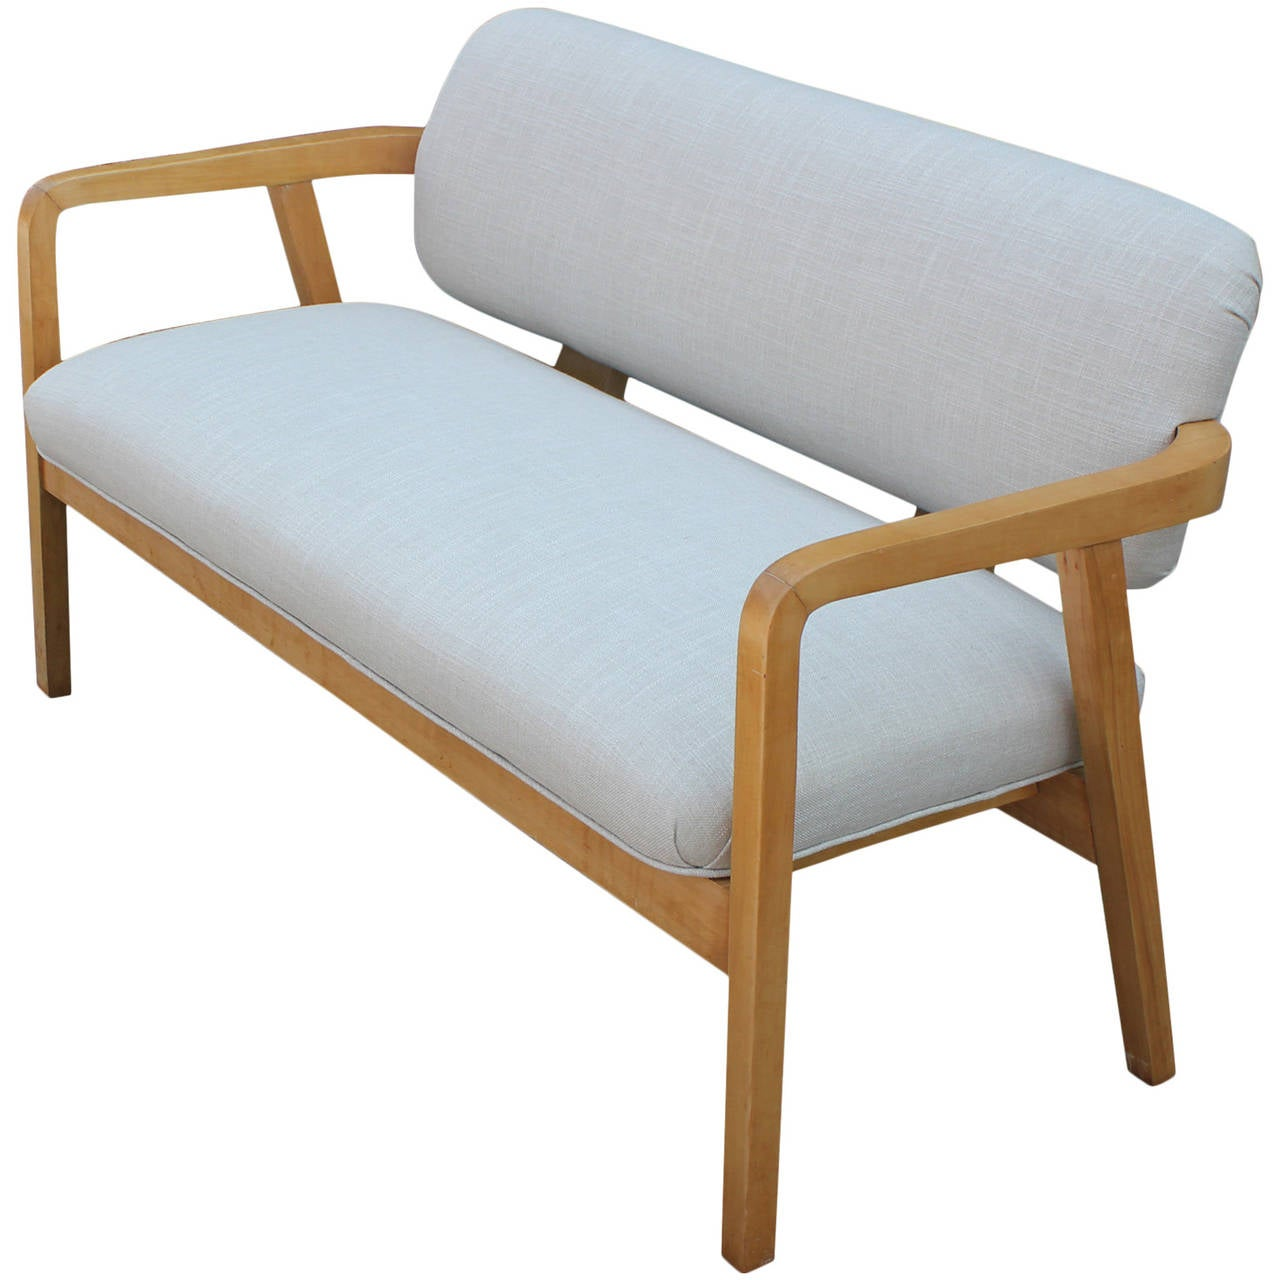 Stunning George Nelson Style Bench Or Settee At 1stdibs